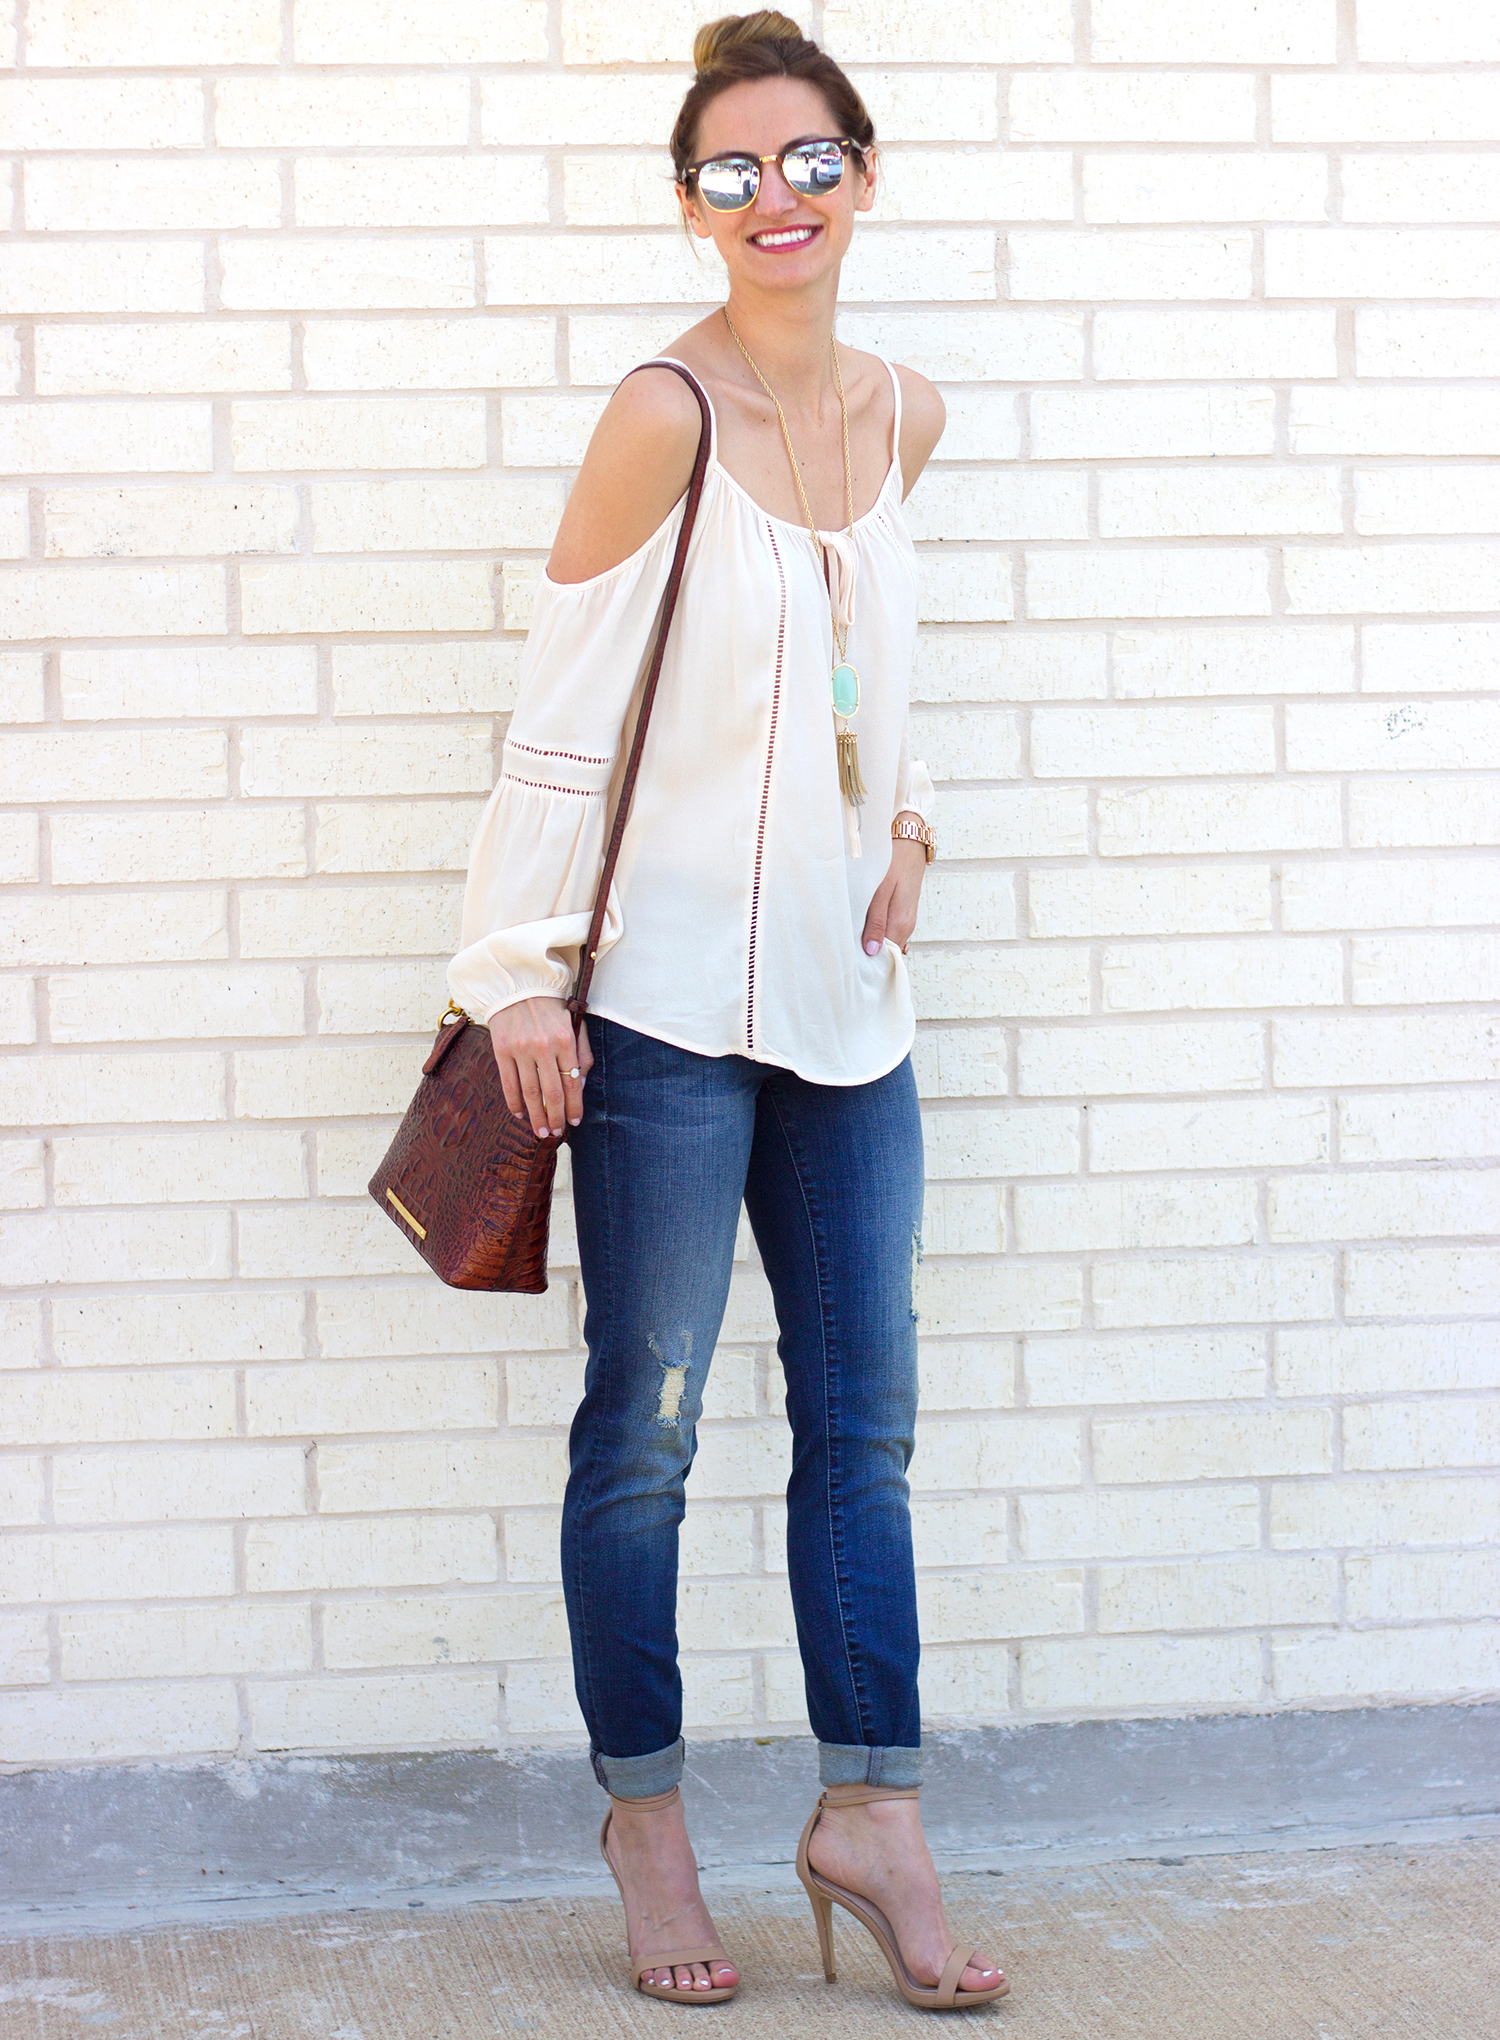 621f4aa6e8c 1-livvyland-blog-olivia-watson-austin-texas-fashion-blogger-kut-against-the-kloth-skinny-jeans-cream-nude-cold-shoulder-off-top-spring-nordstrom-stecy-heels  ...